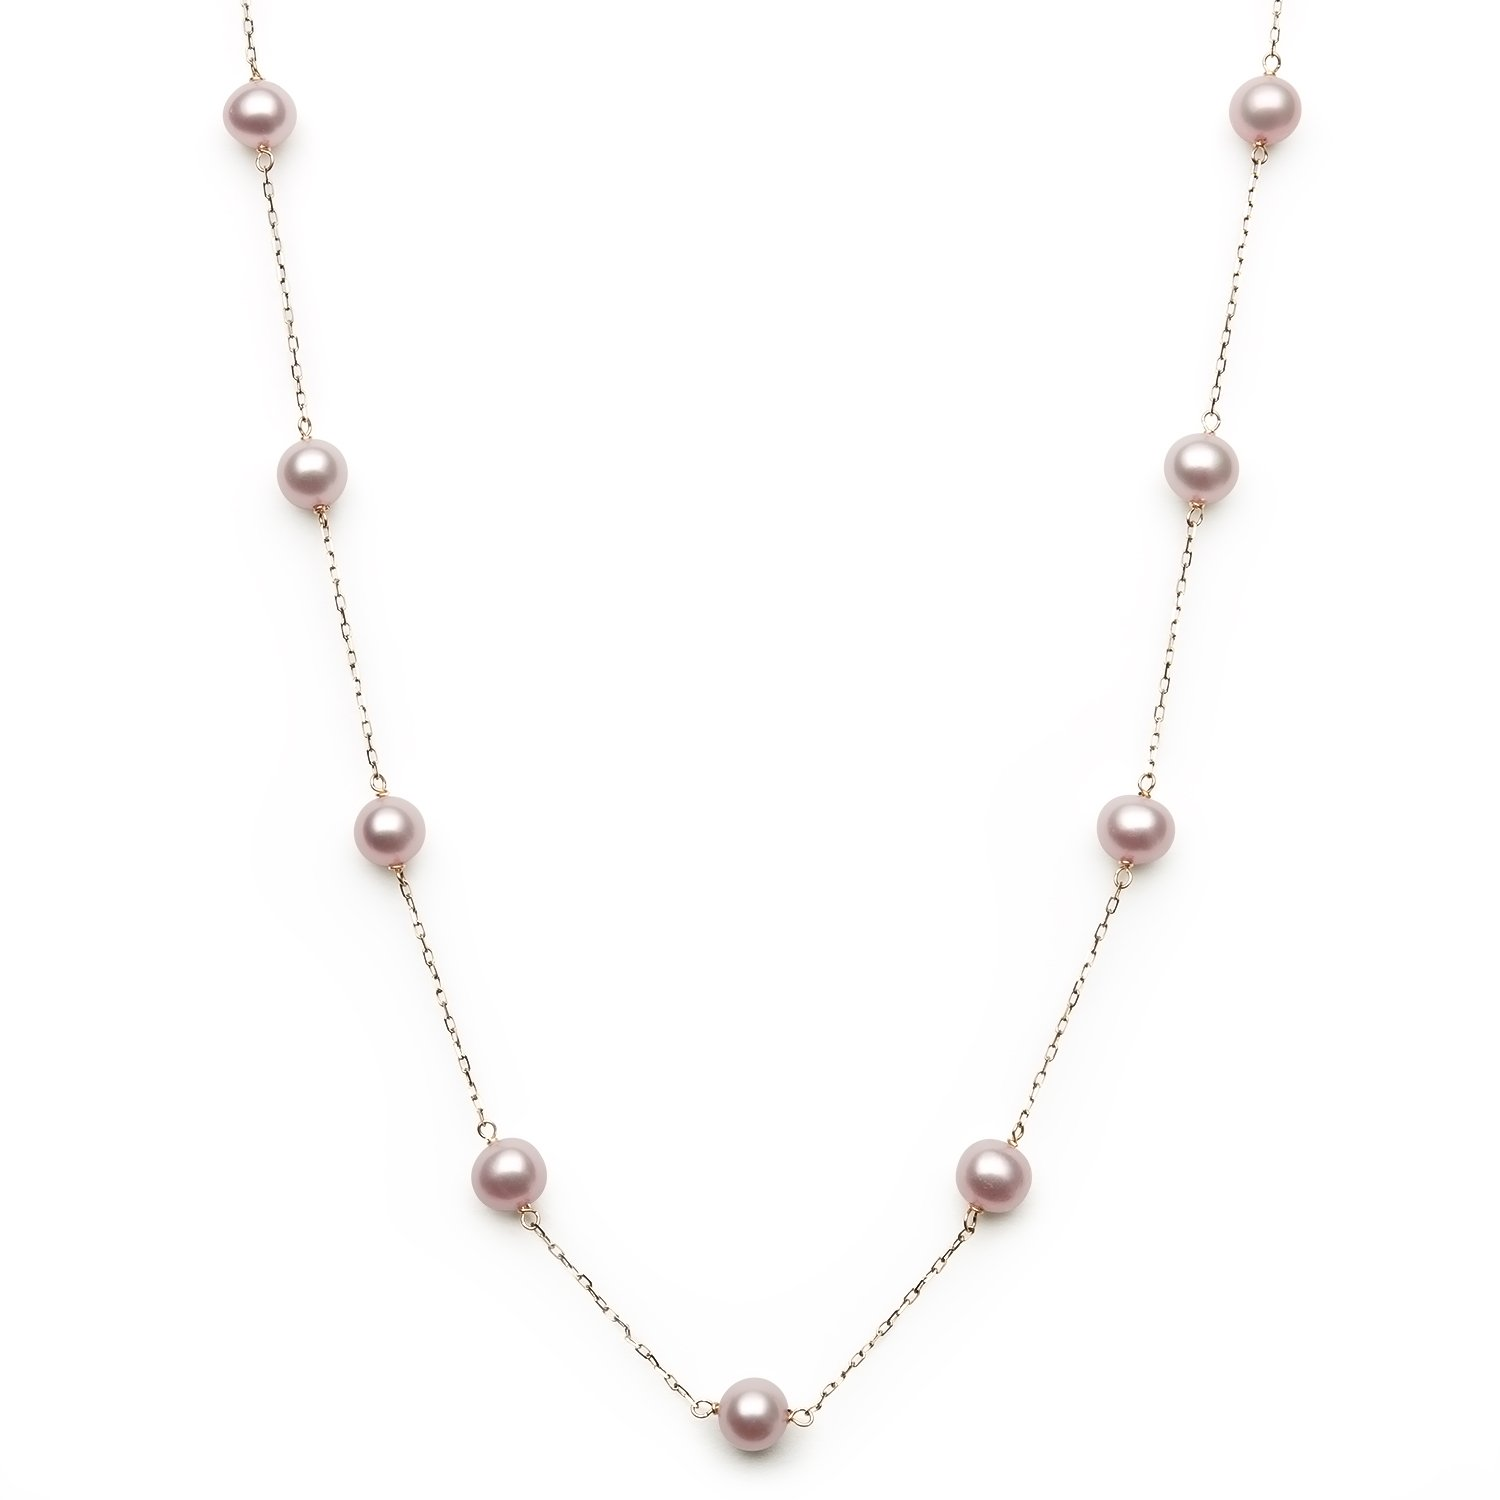 10k Yellow Gold Cultured Freshwater Pearl Station Necklace,18